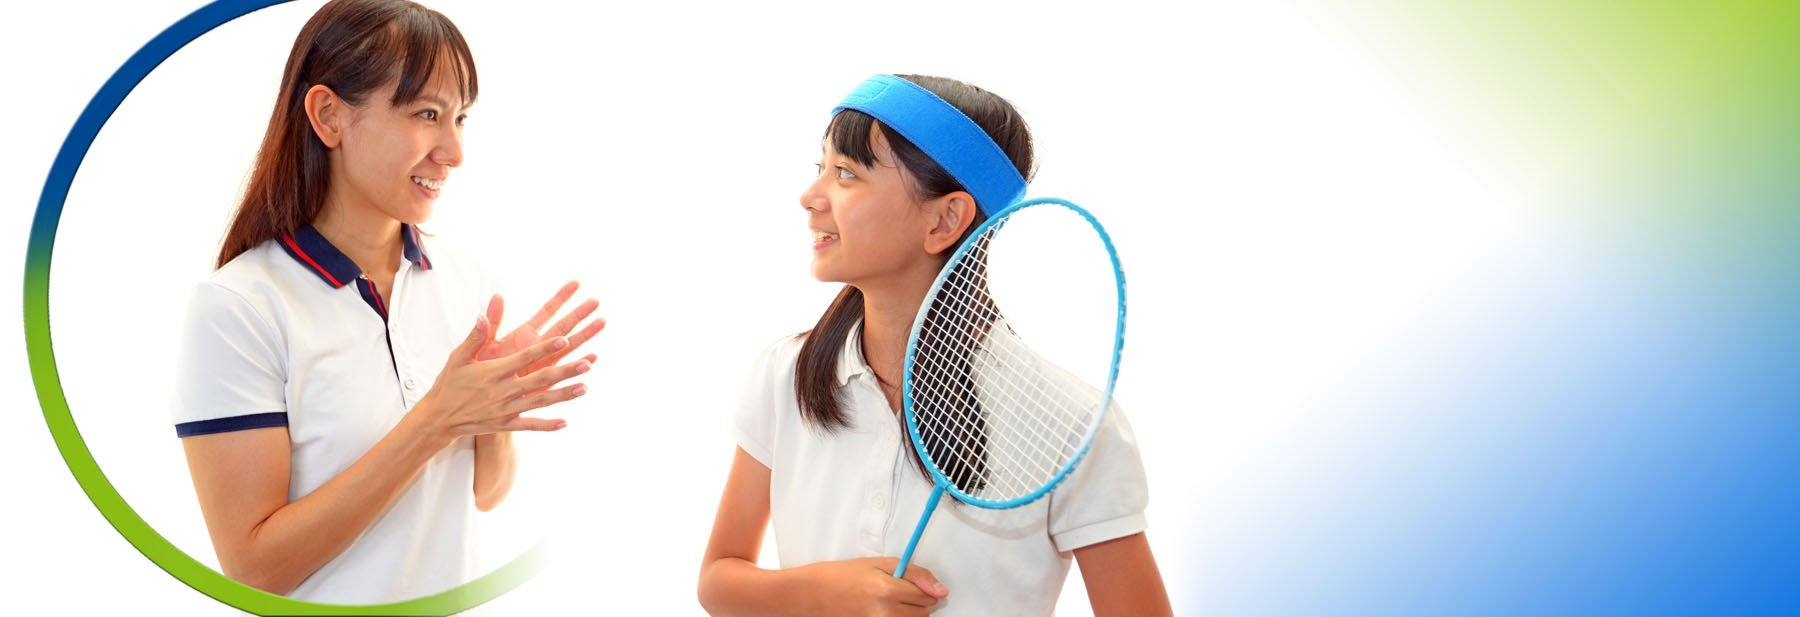 Badminton Management Software for Clubs